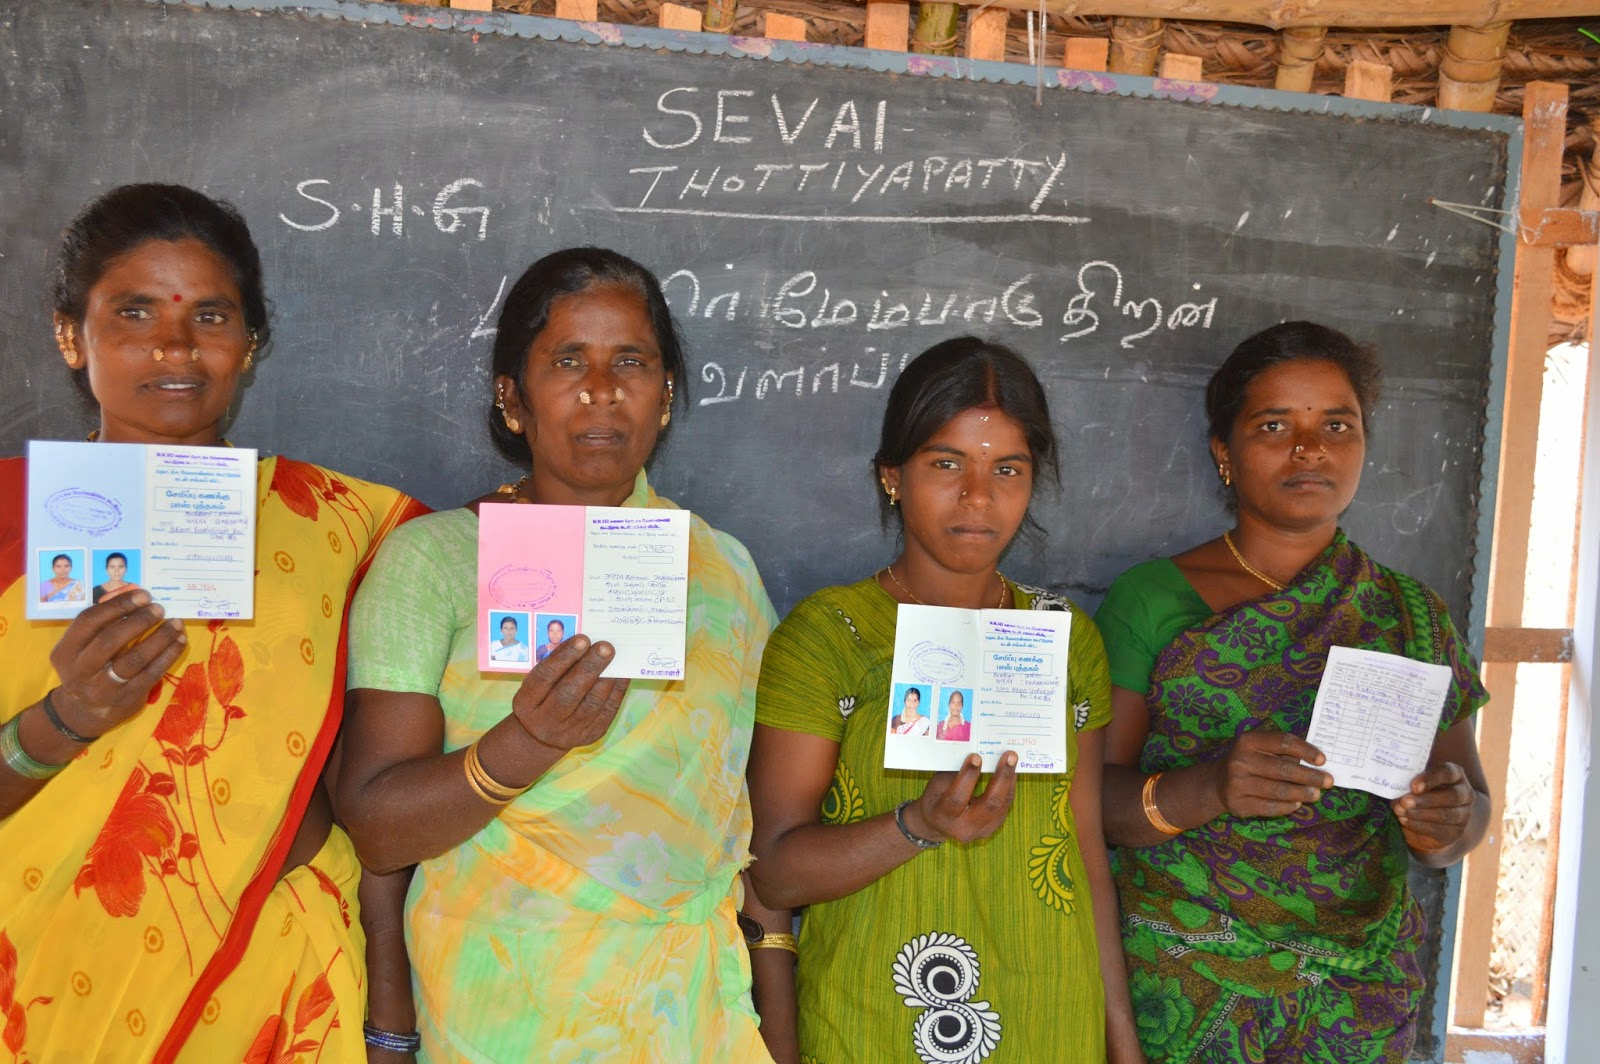 SEVAI/OFI/SG-Watershed for poor through Thottiyapatty women self help groups.